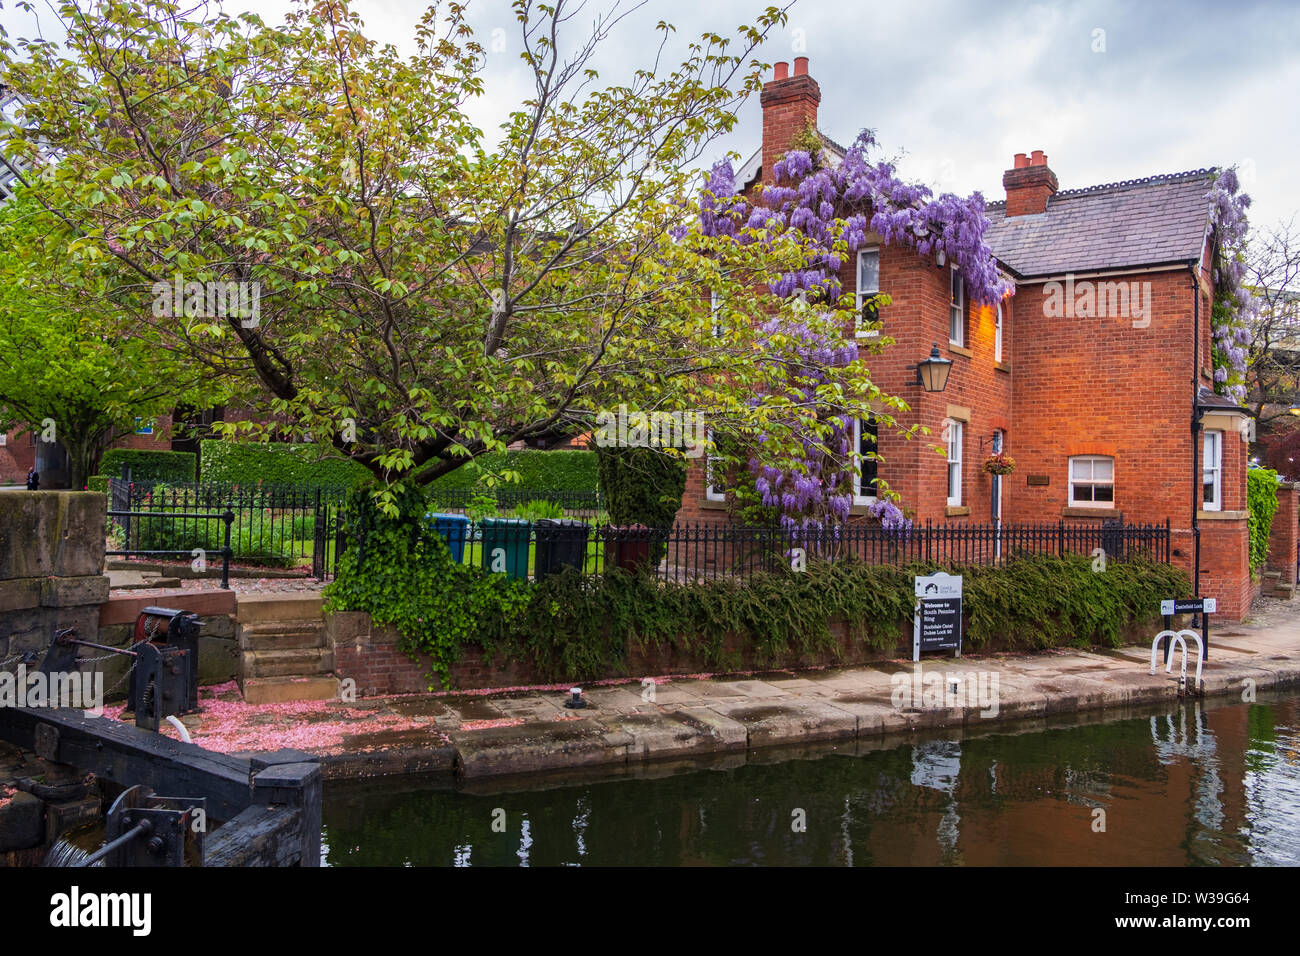 Manchester, United Kingdom - April 25, 2019: Atmospheric scene  of  the restored Victorian canal system in Castlefield area of Manchester Stock Photo